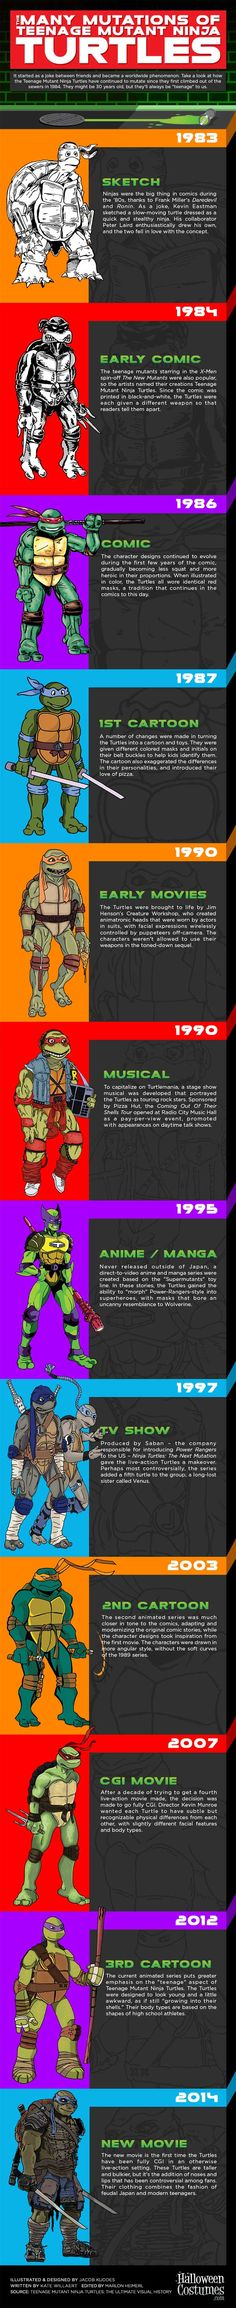 The Evolution of Teenage Mutant Ninja Turtles: From 1983 to 2014 [Infographic] | Geeks are Sexy Technology News